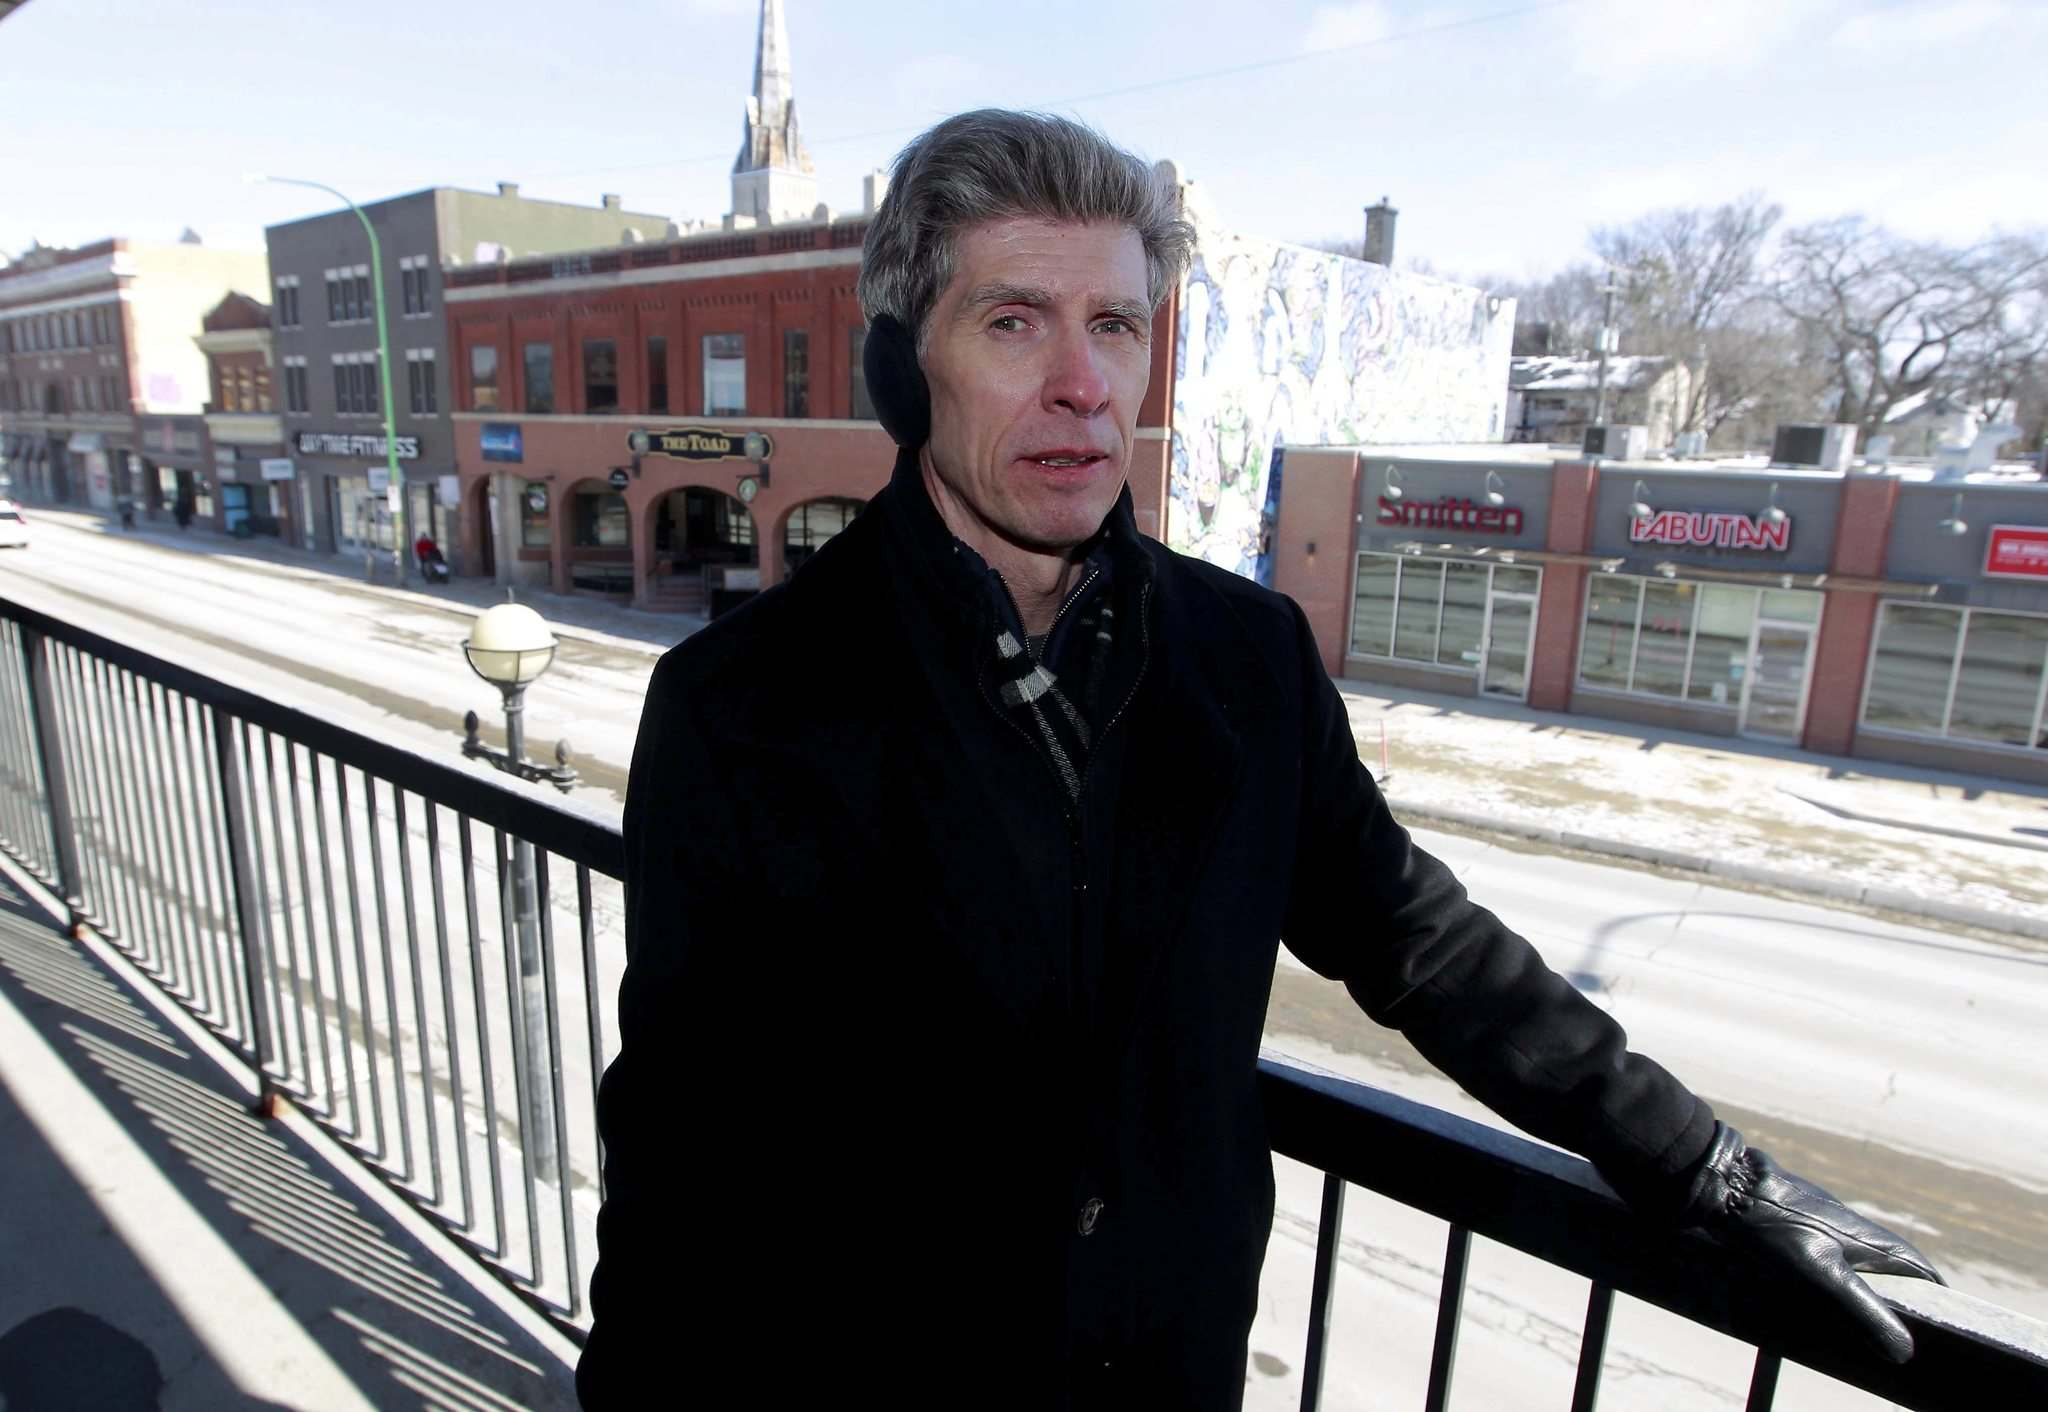 BORIS MINKEVICH / WINNIPEG FREE PRESS</p><p>Robert Orr is concerned about the decline of Osborne Village, given the empty spaces in the Desart block, the vacant Ward 1 restaurant and the uncertainty about the Osborne Village Inn.</p></p>